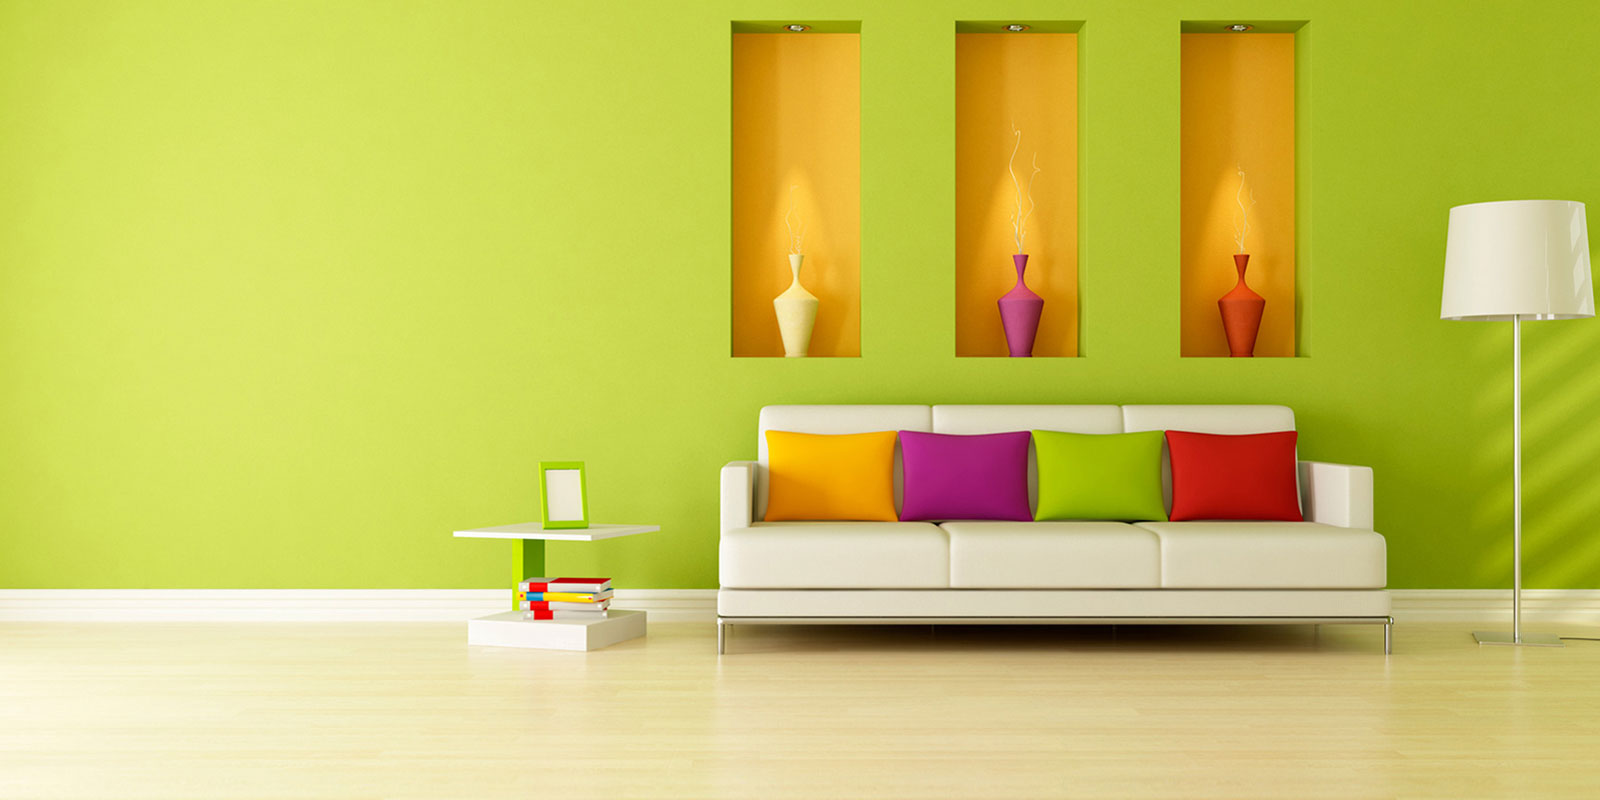 Pintura y decoración de interior - decolors